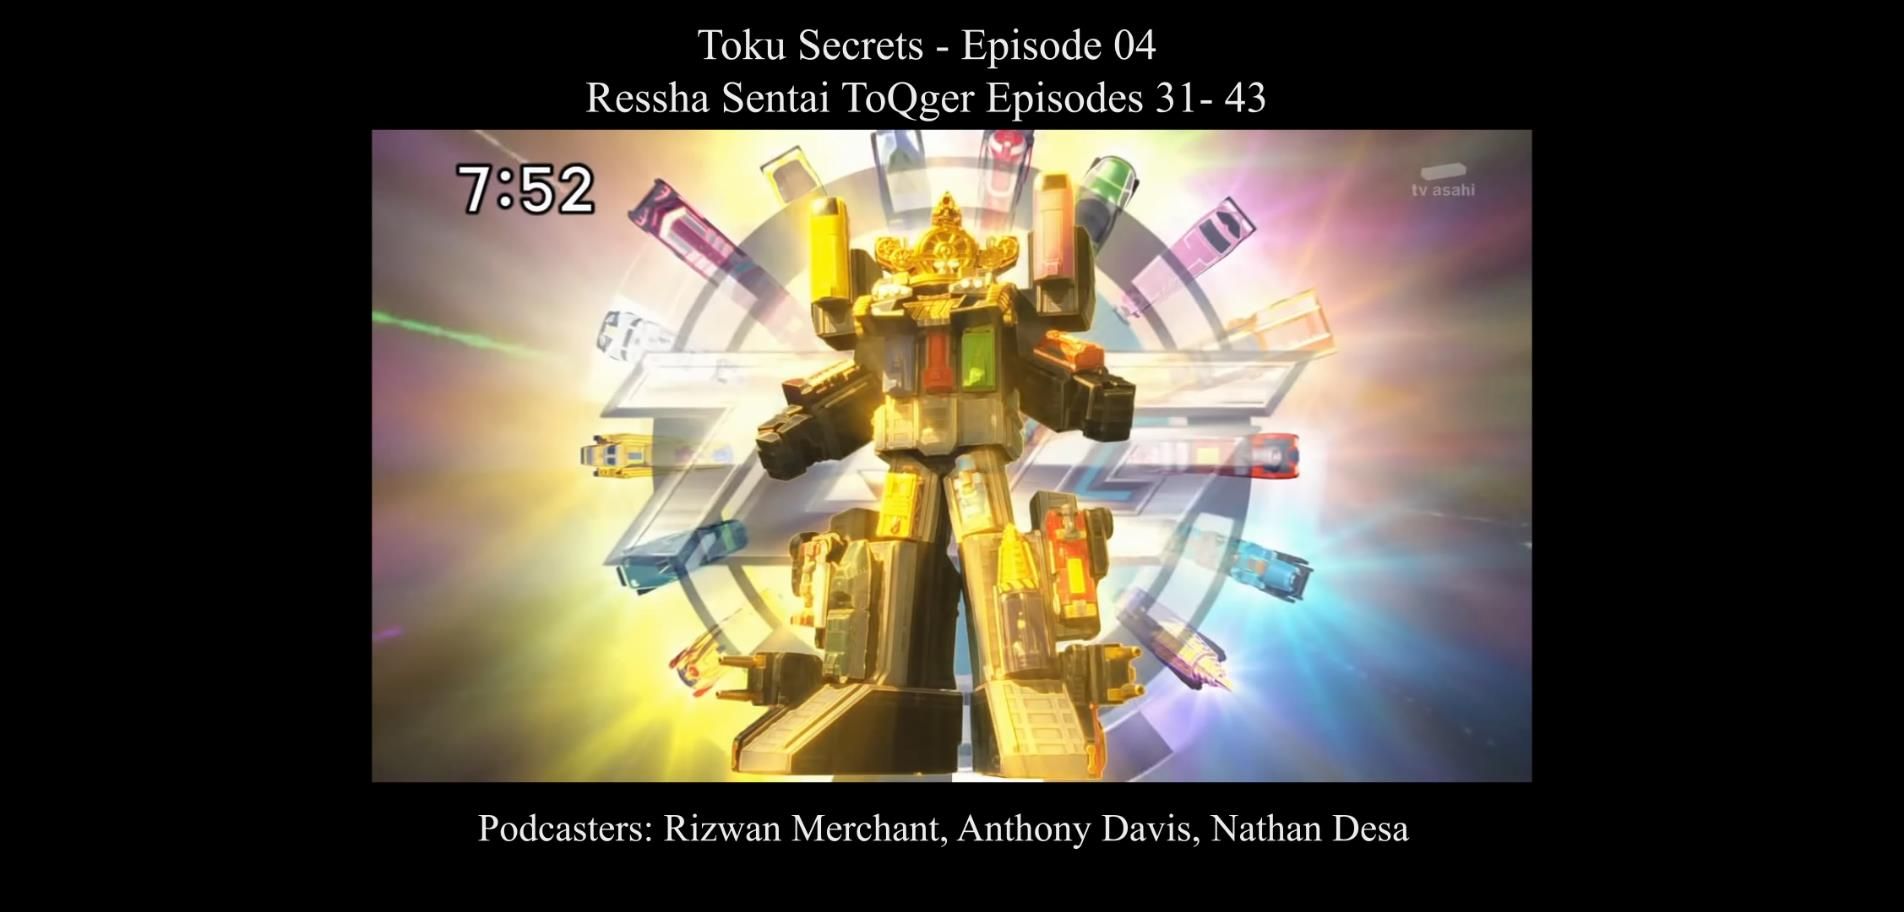 Toku Secrets Podcast: Episode 04 – Ressha Sentai ToQger Part 4